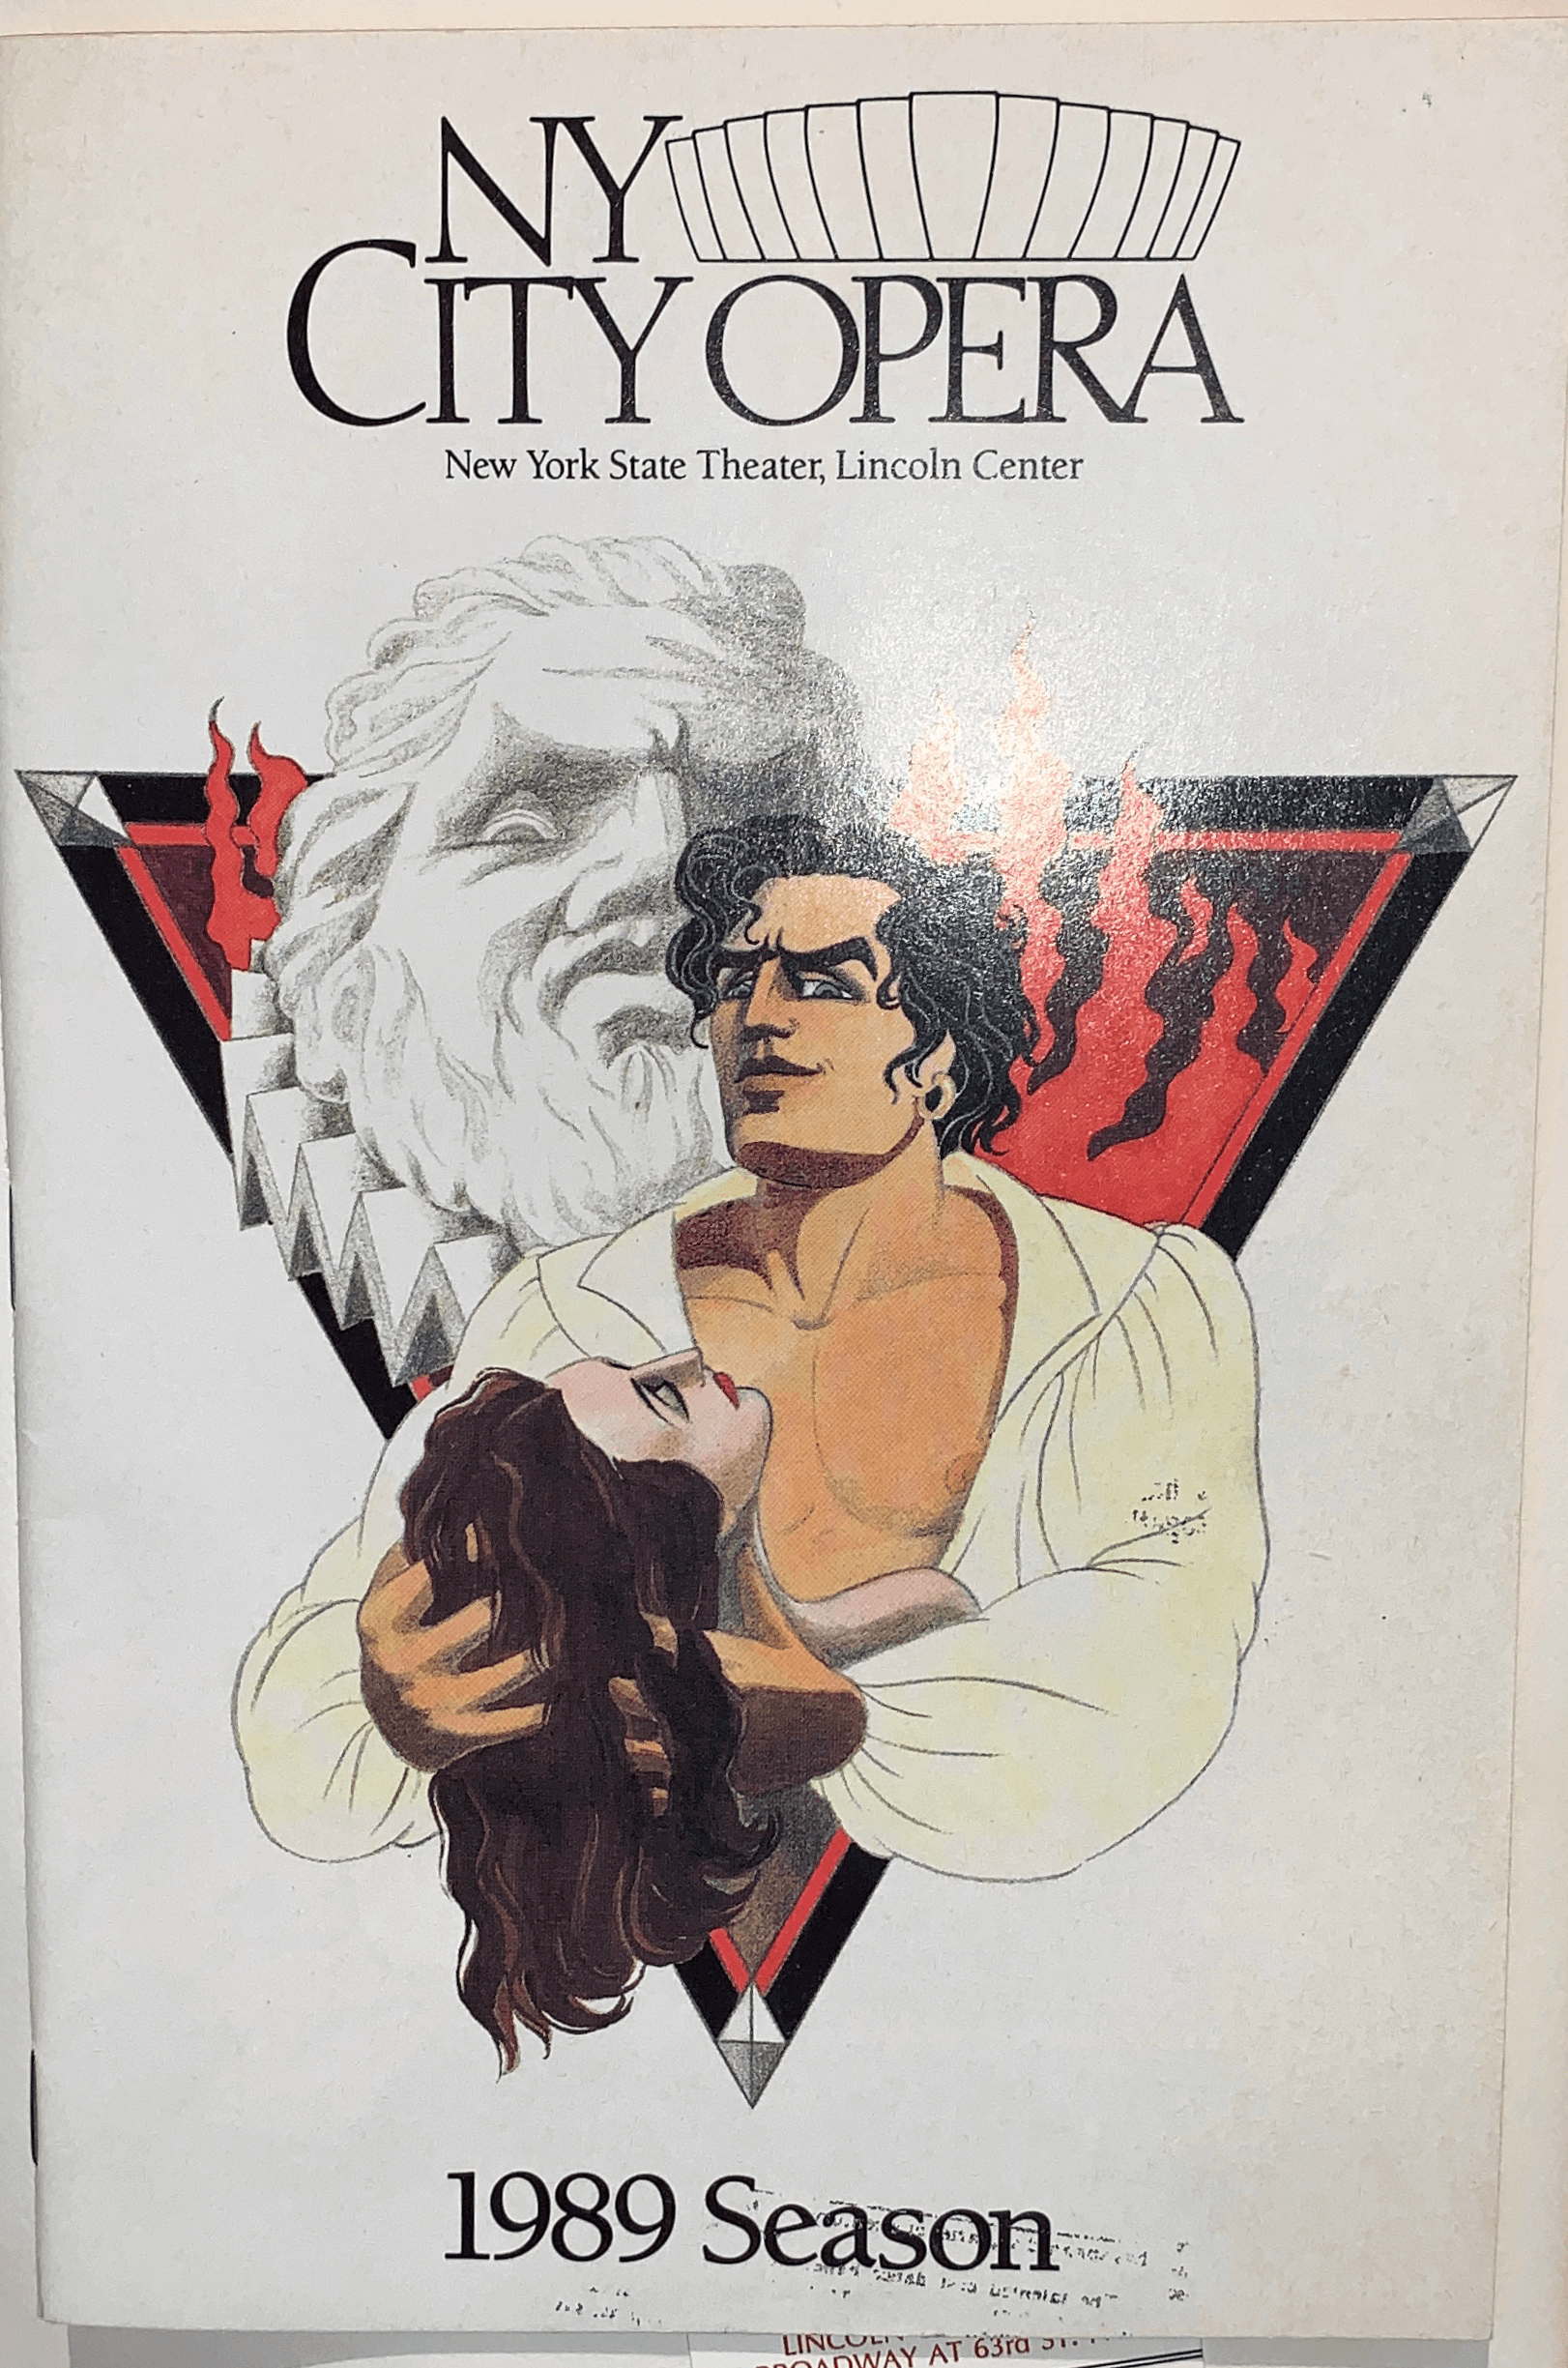 1989 season's Don Giovanni playbill cover art, with NY City Opera: New York State Theater, Lincoln Center written on the upper portion, and 1989 Season on the bottom. A colored photo of the main cast is at the center, with a grayscale sculpture within inverted triangle drawing behind them.